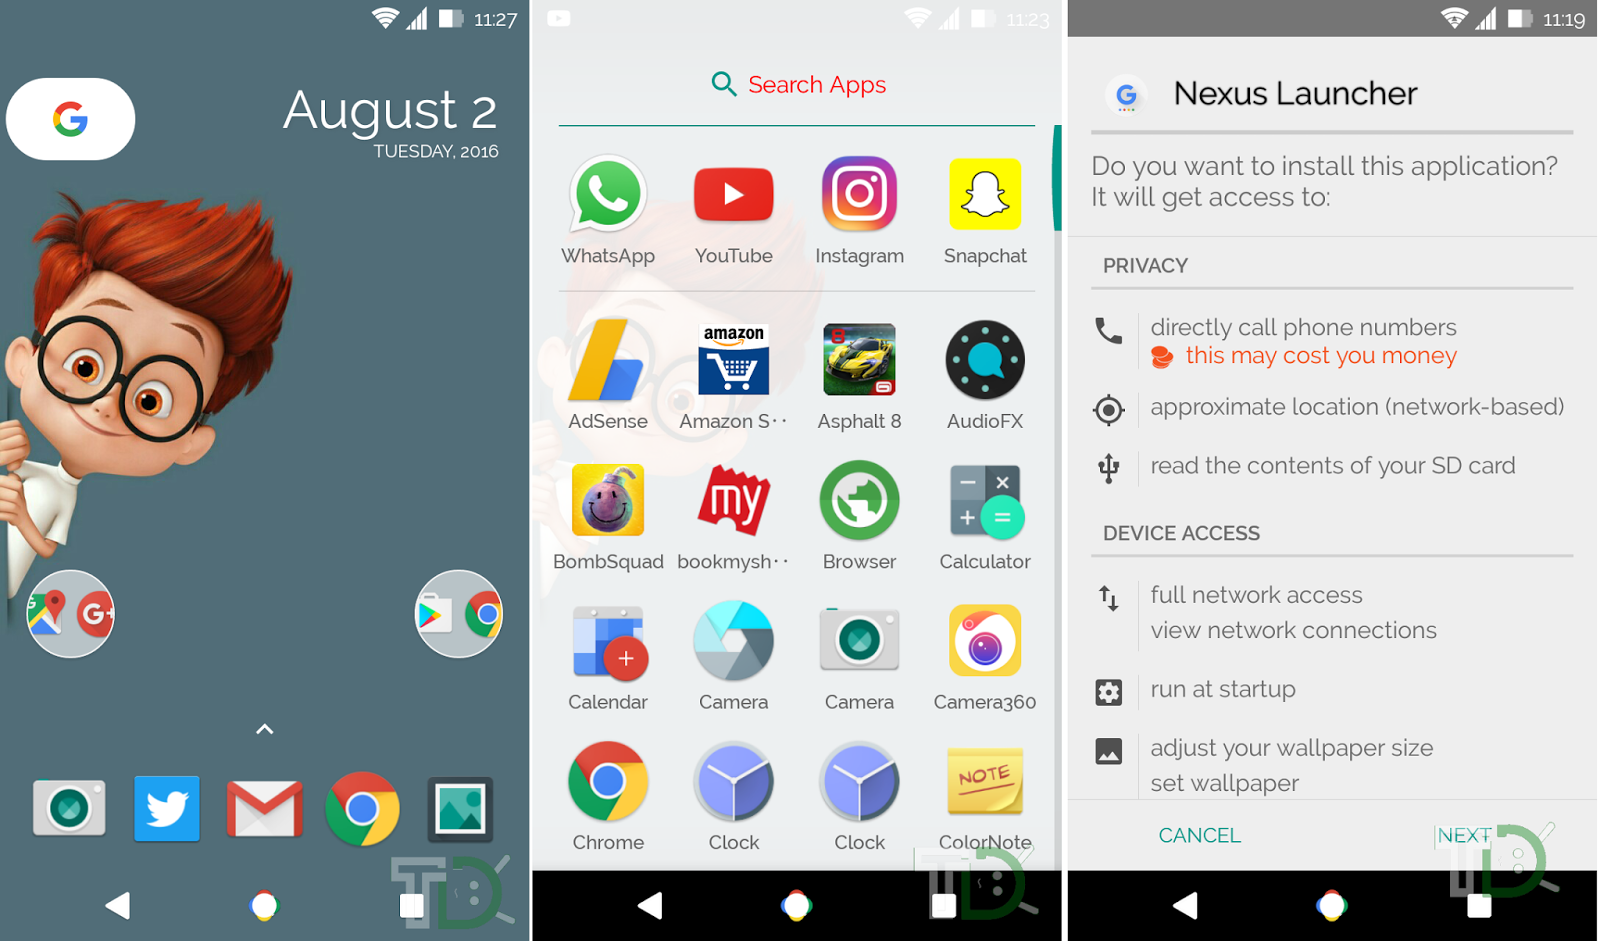 google nexus launcher apk, google nexus launcher for android, nexus launcher skyrim, nexus launcher download apk, nexus 6 launcher, galaxy nexus launcher, nexus launcher free download, google now launcher apk,